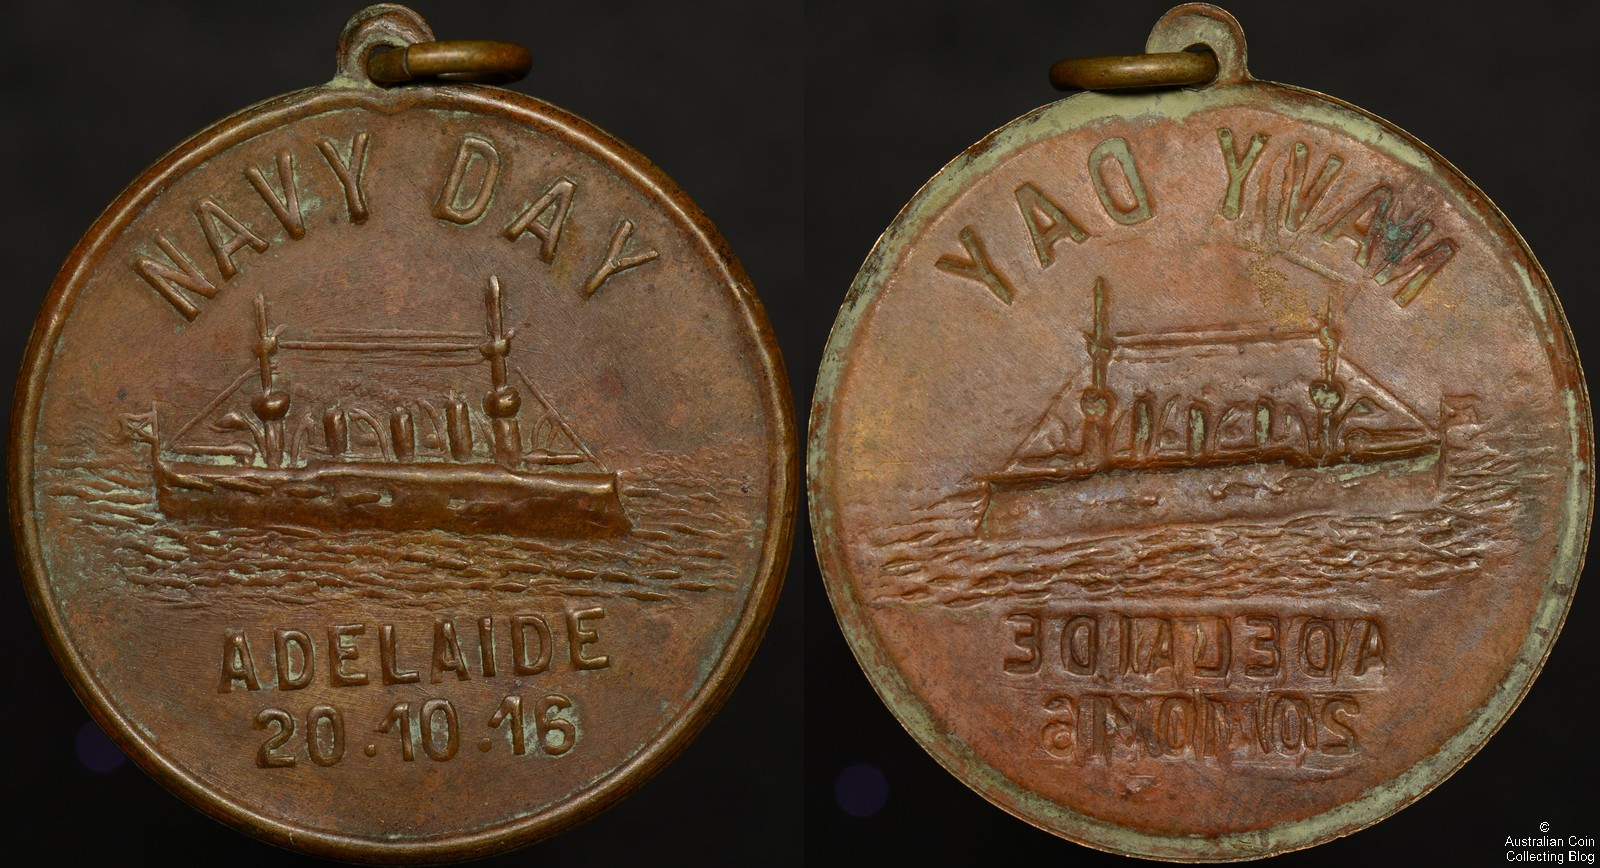 1916 Adelaide Navy Day Medallion